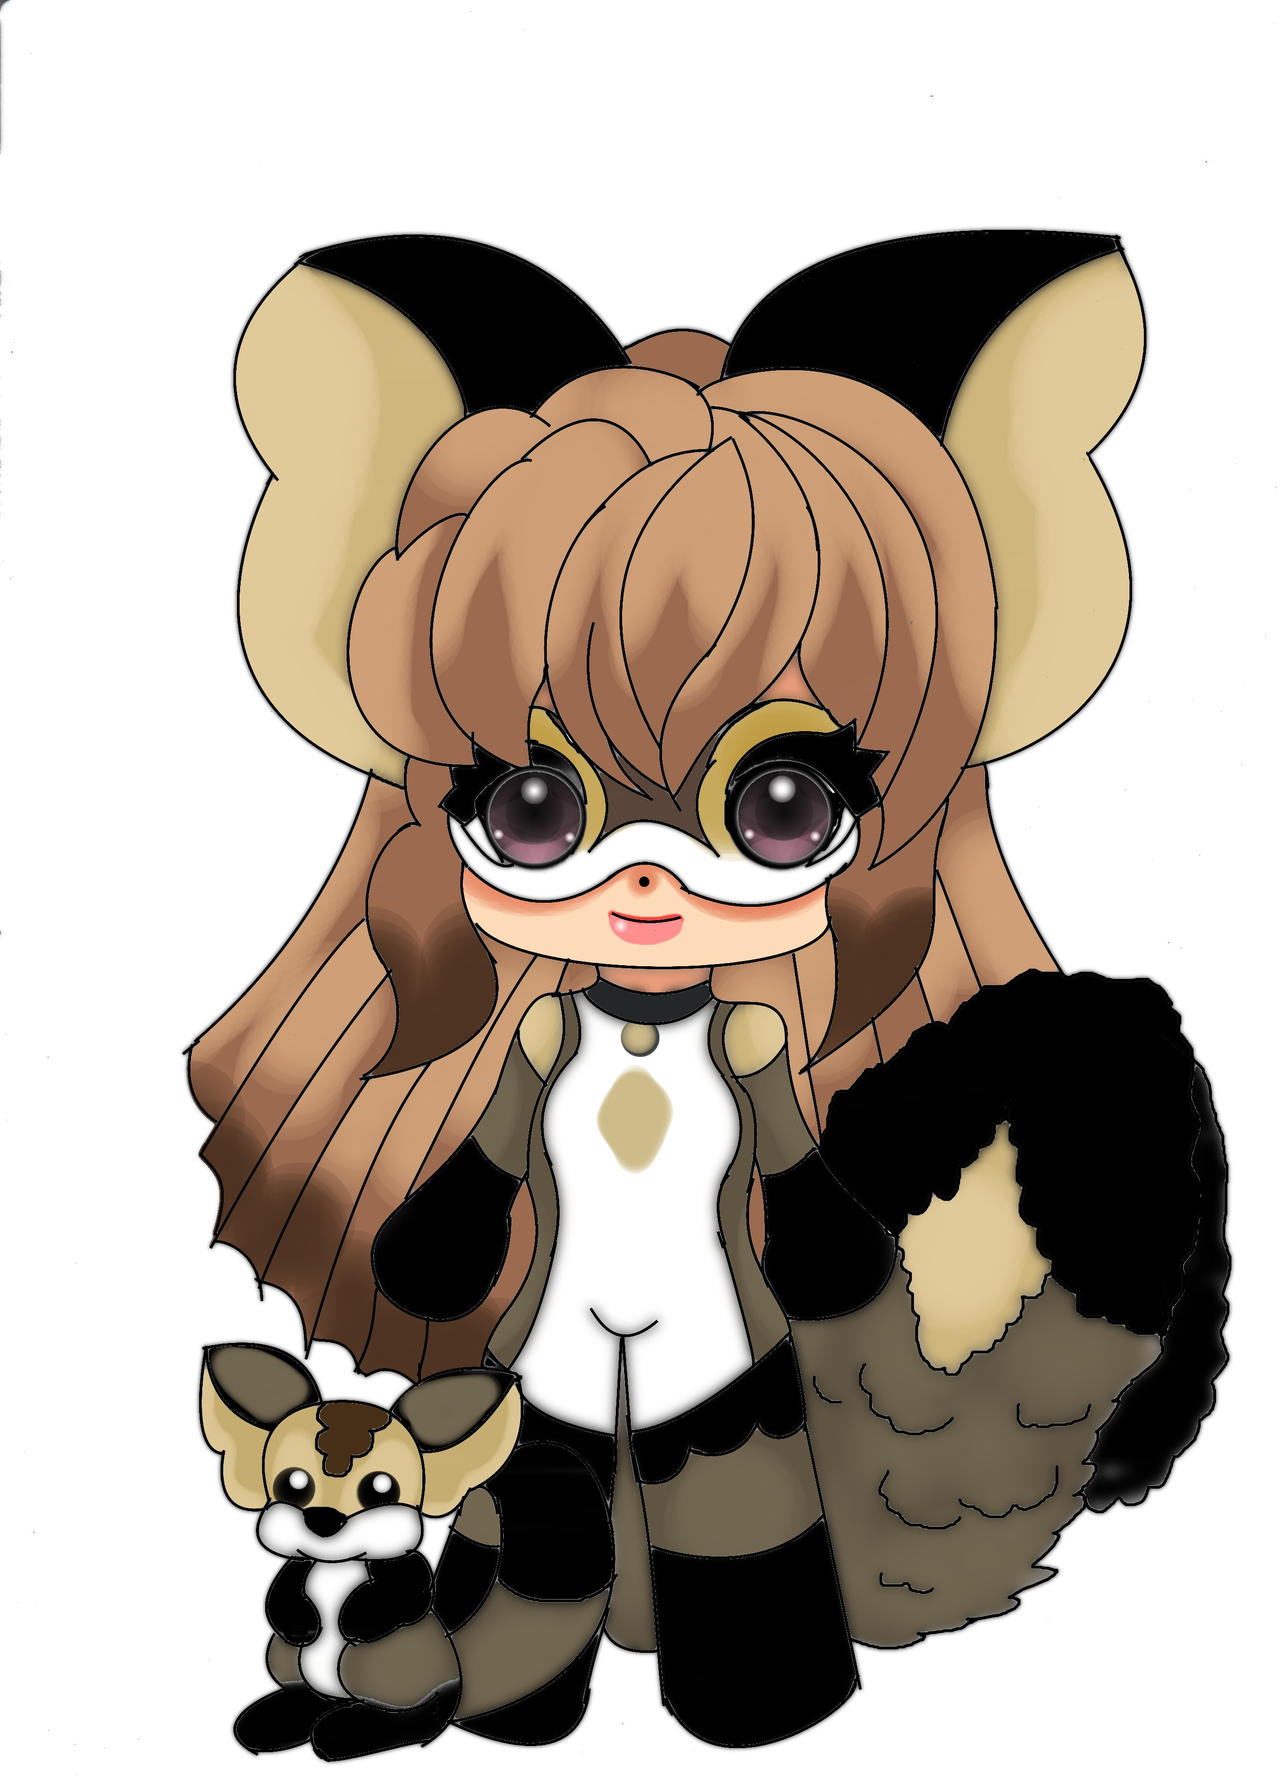 Chibi Request for